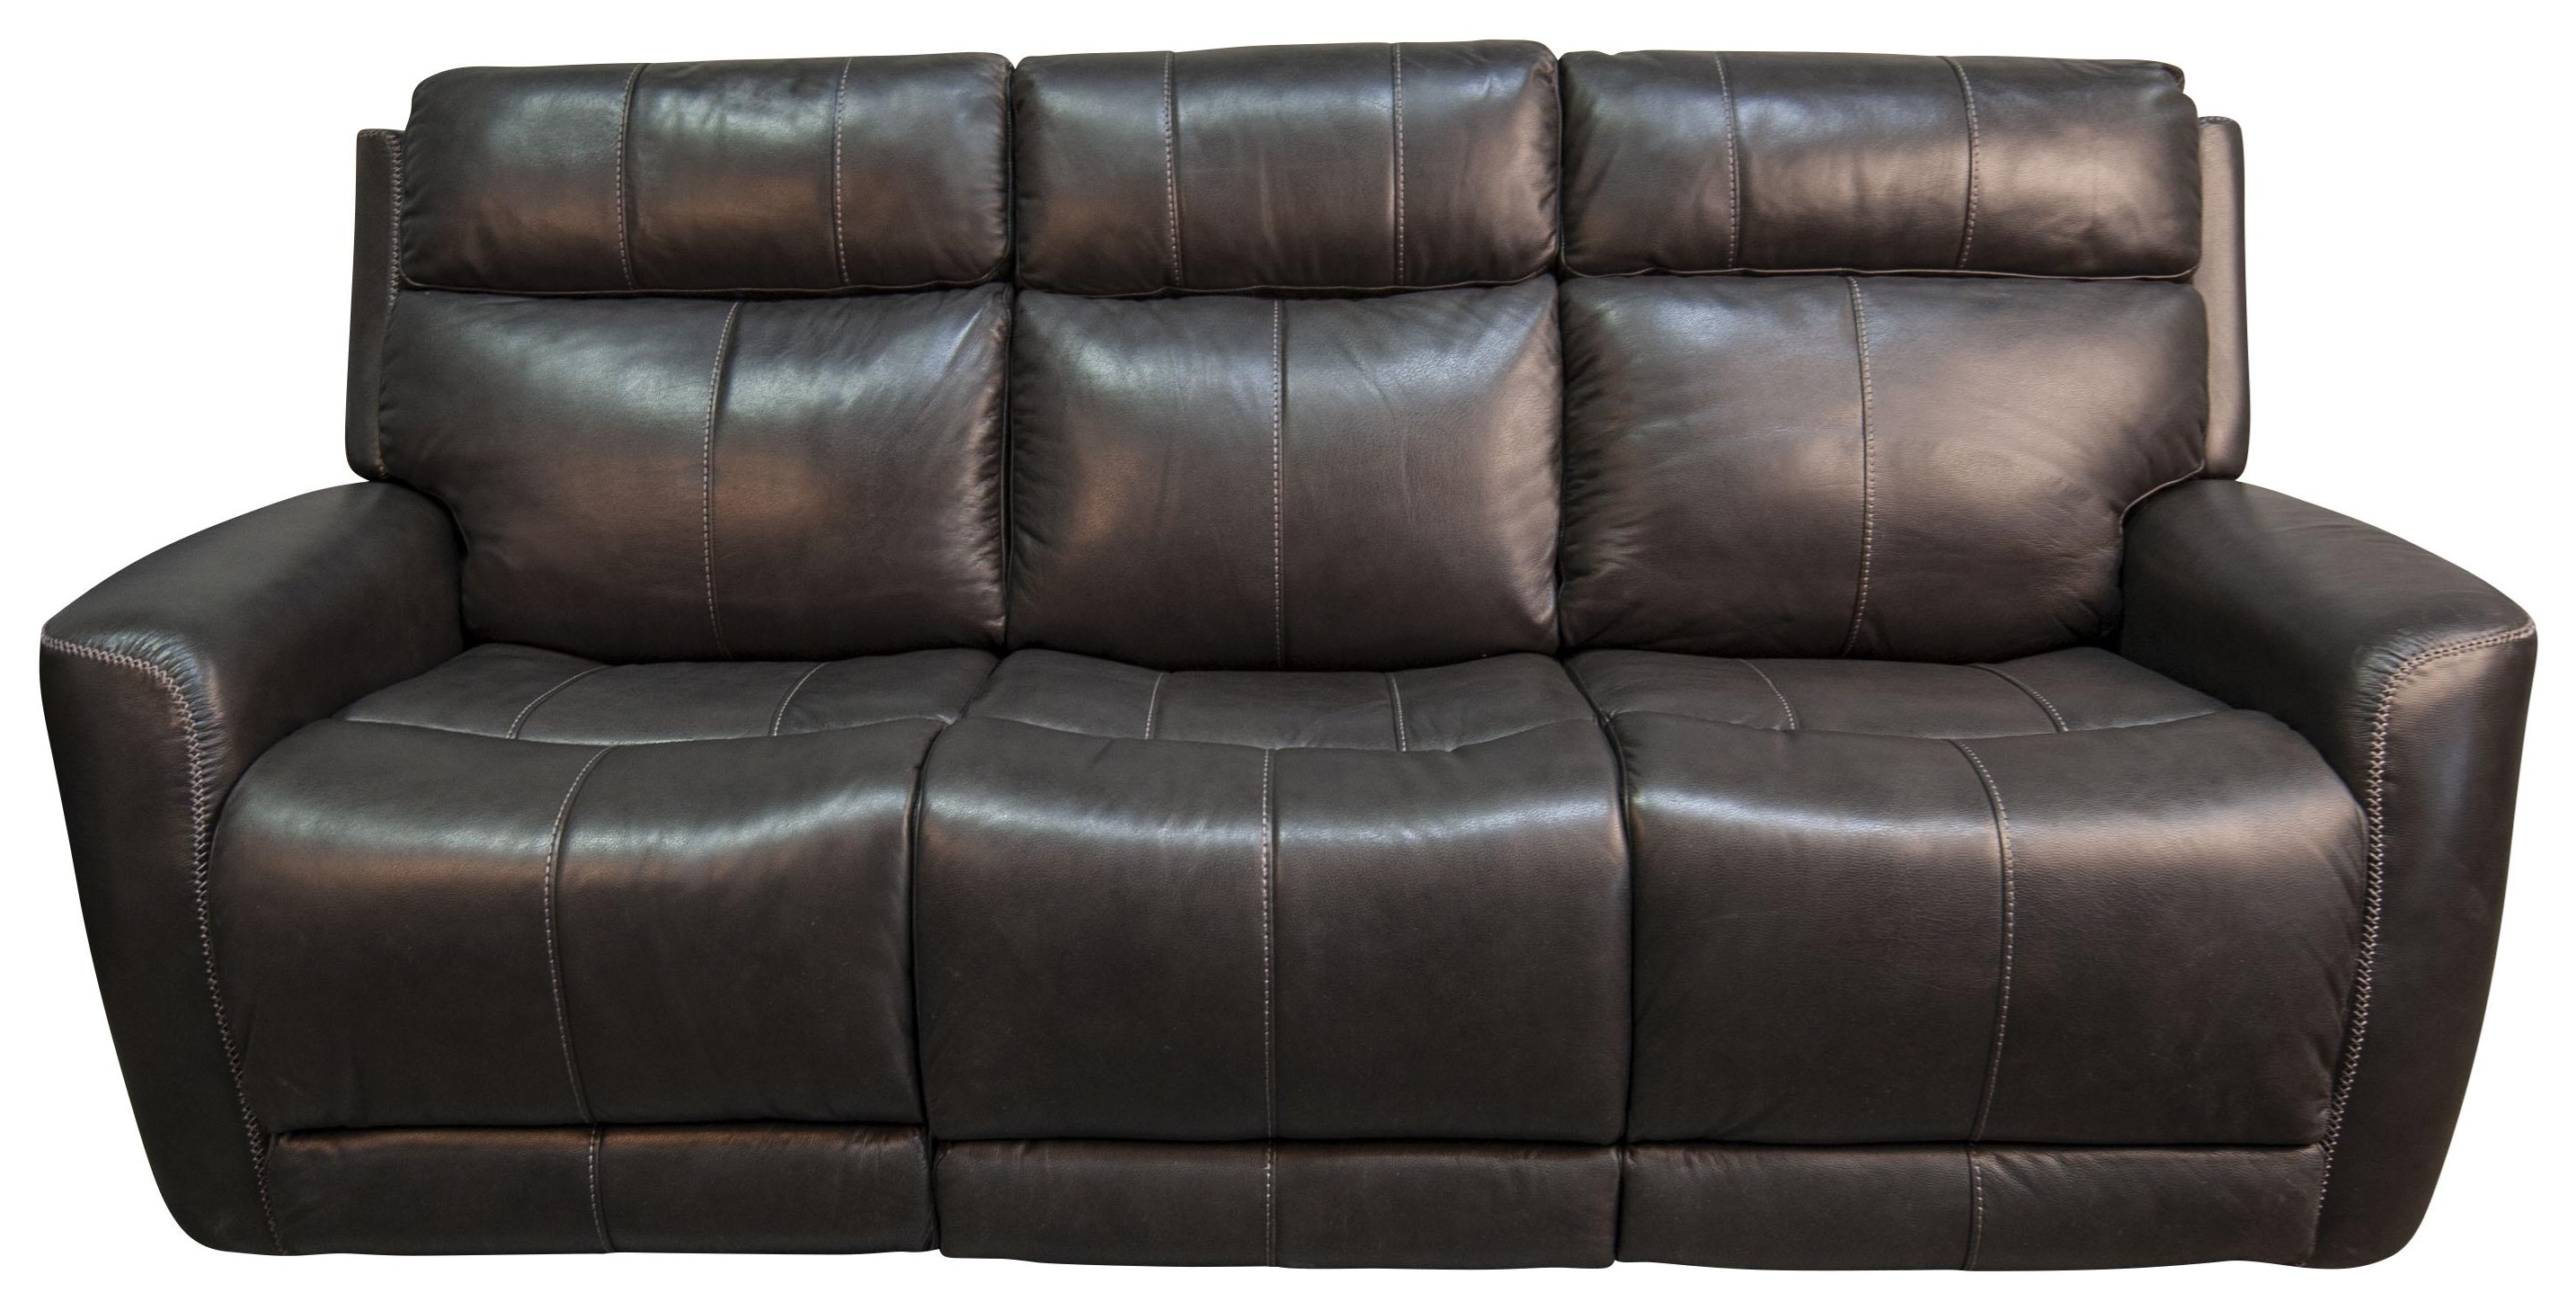 Pravin Pravin Leather Match Power Sofa by Parker House at Morris Home